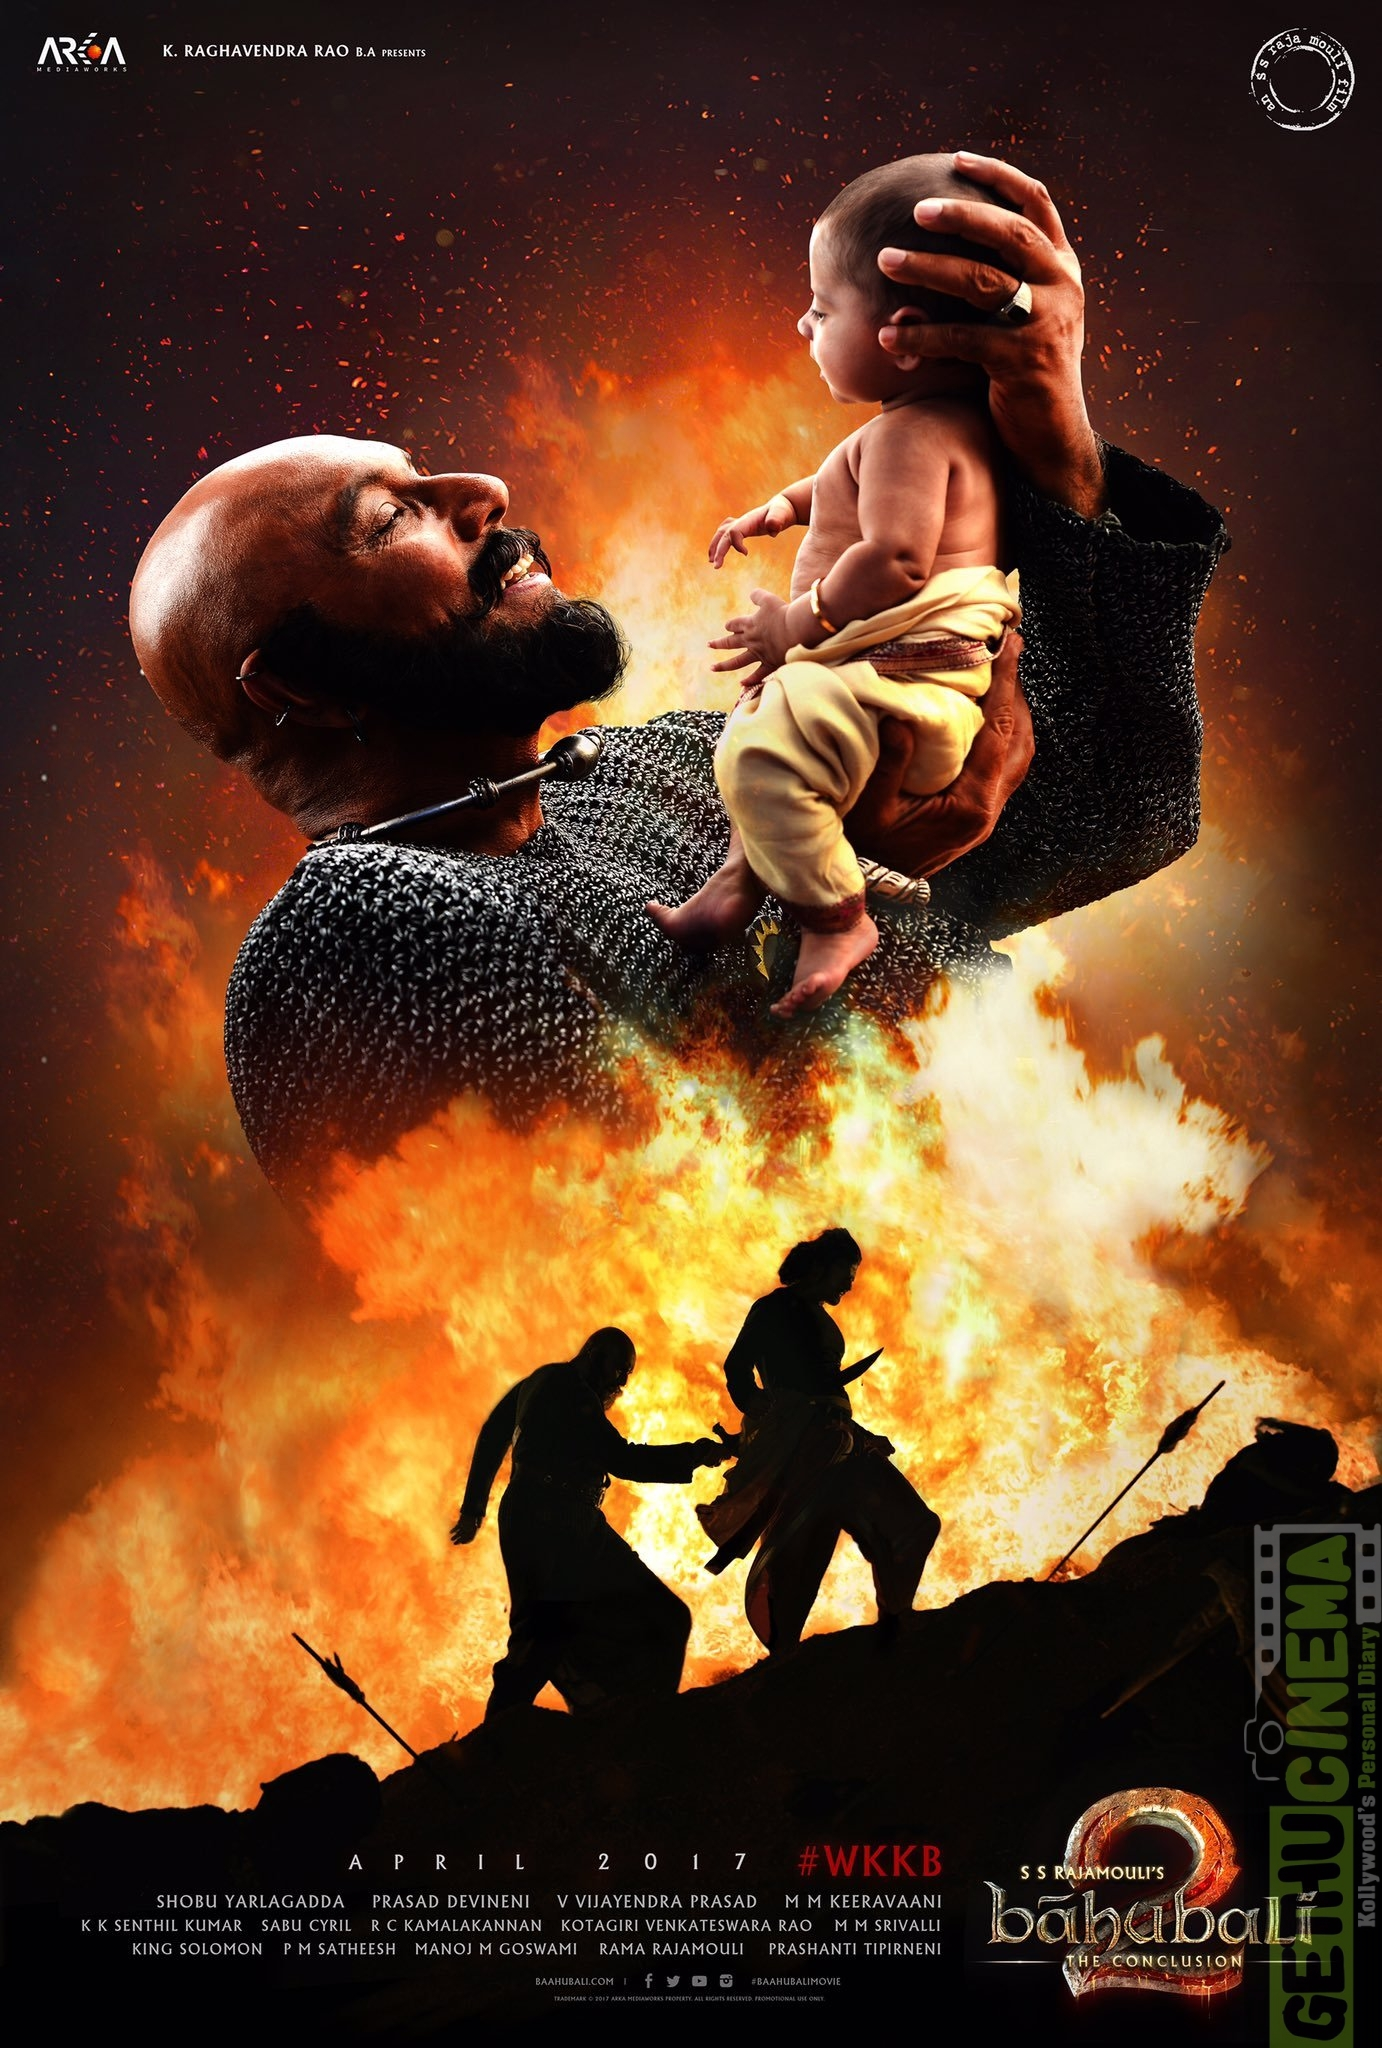 baahubali 2 the conclusion another